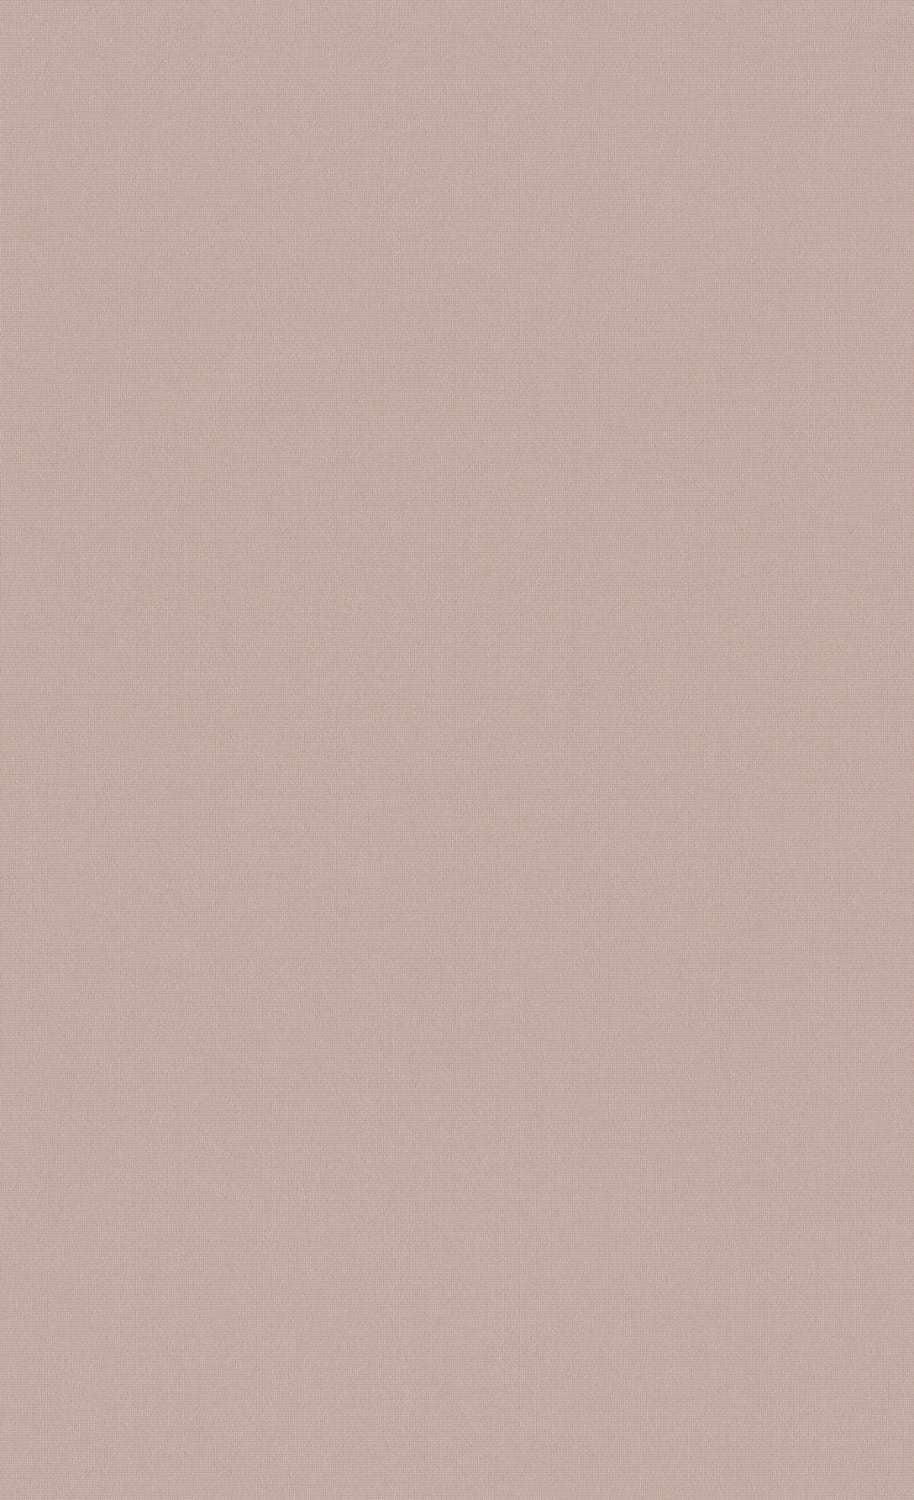 Pink Textured Graph Wallpaper C7231. Contract wallcovering